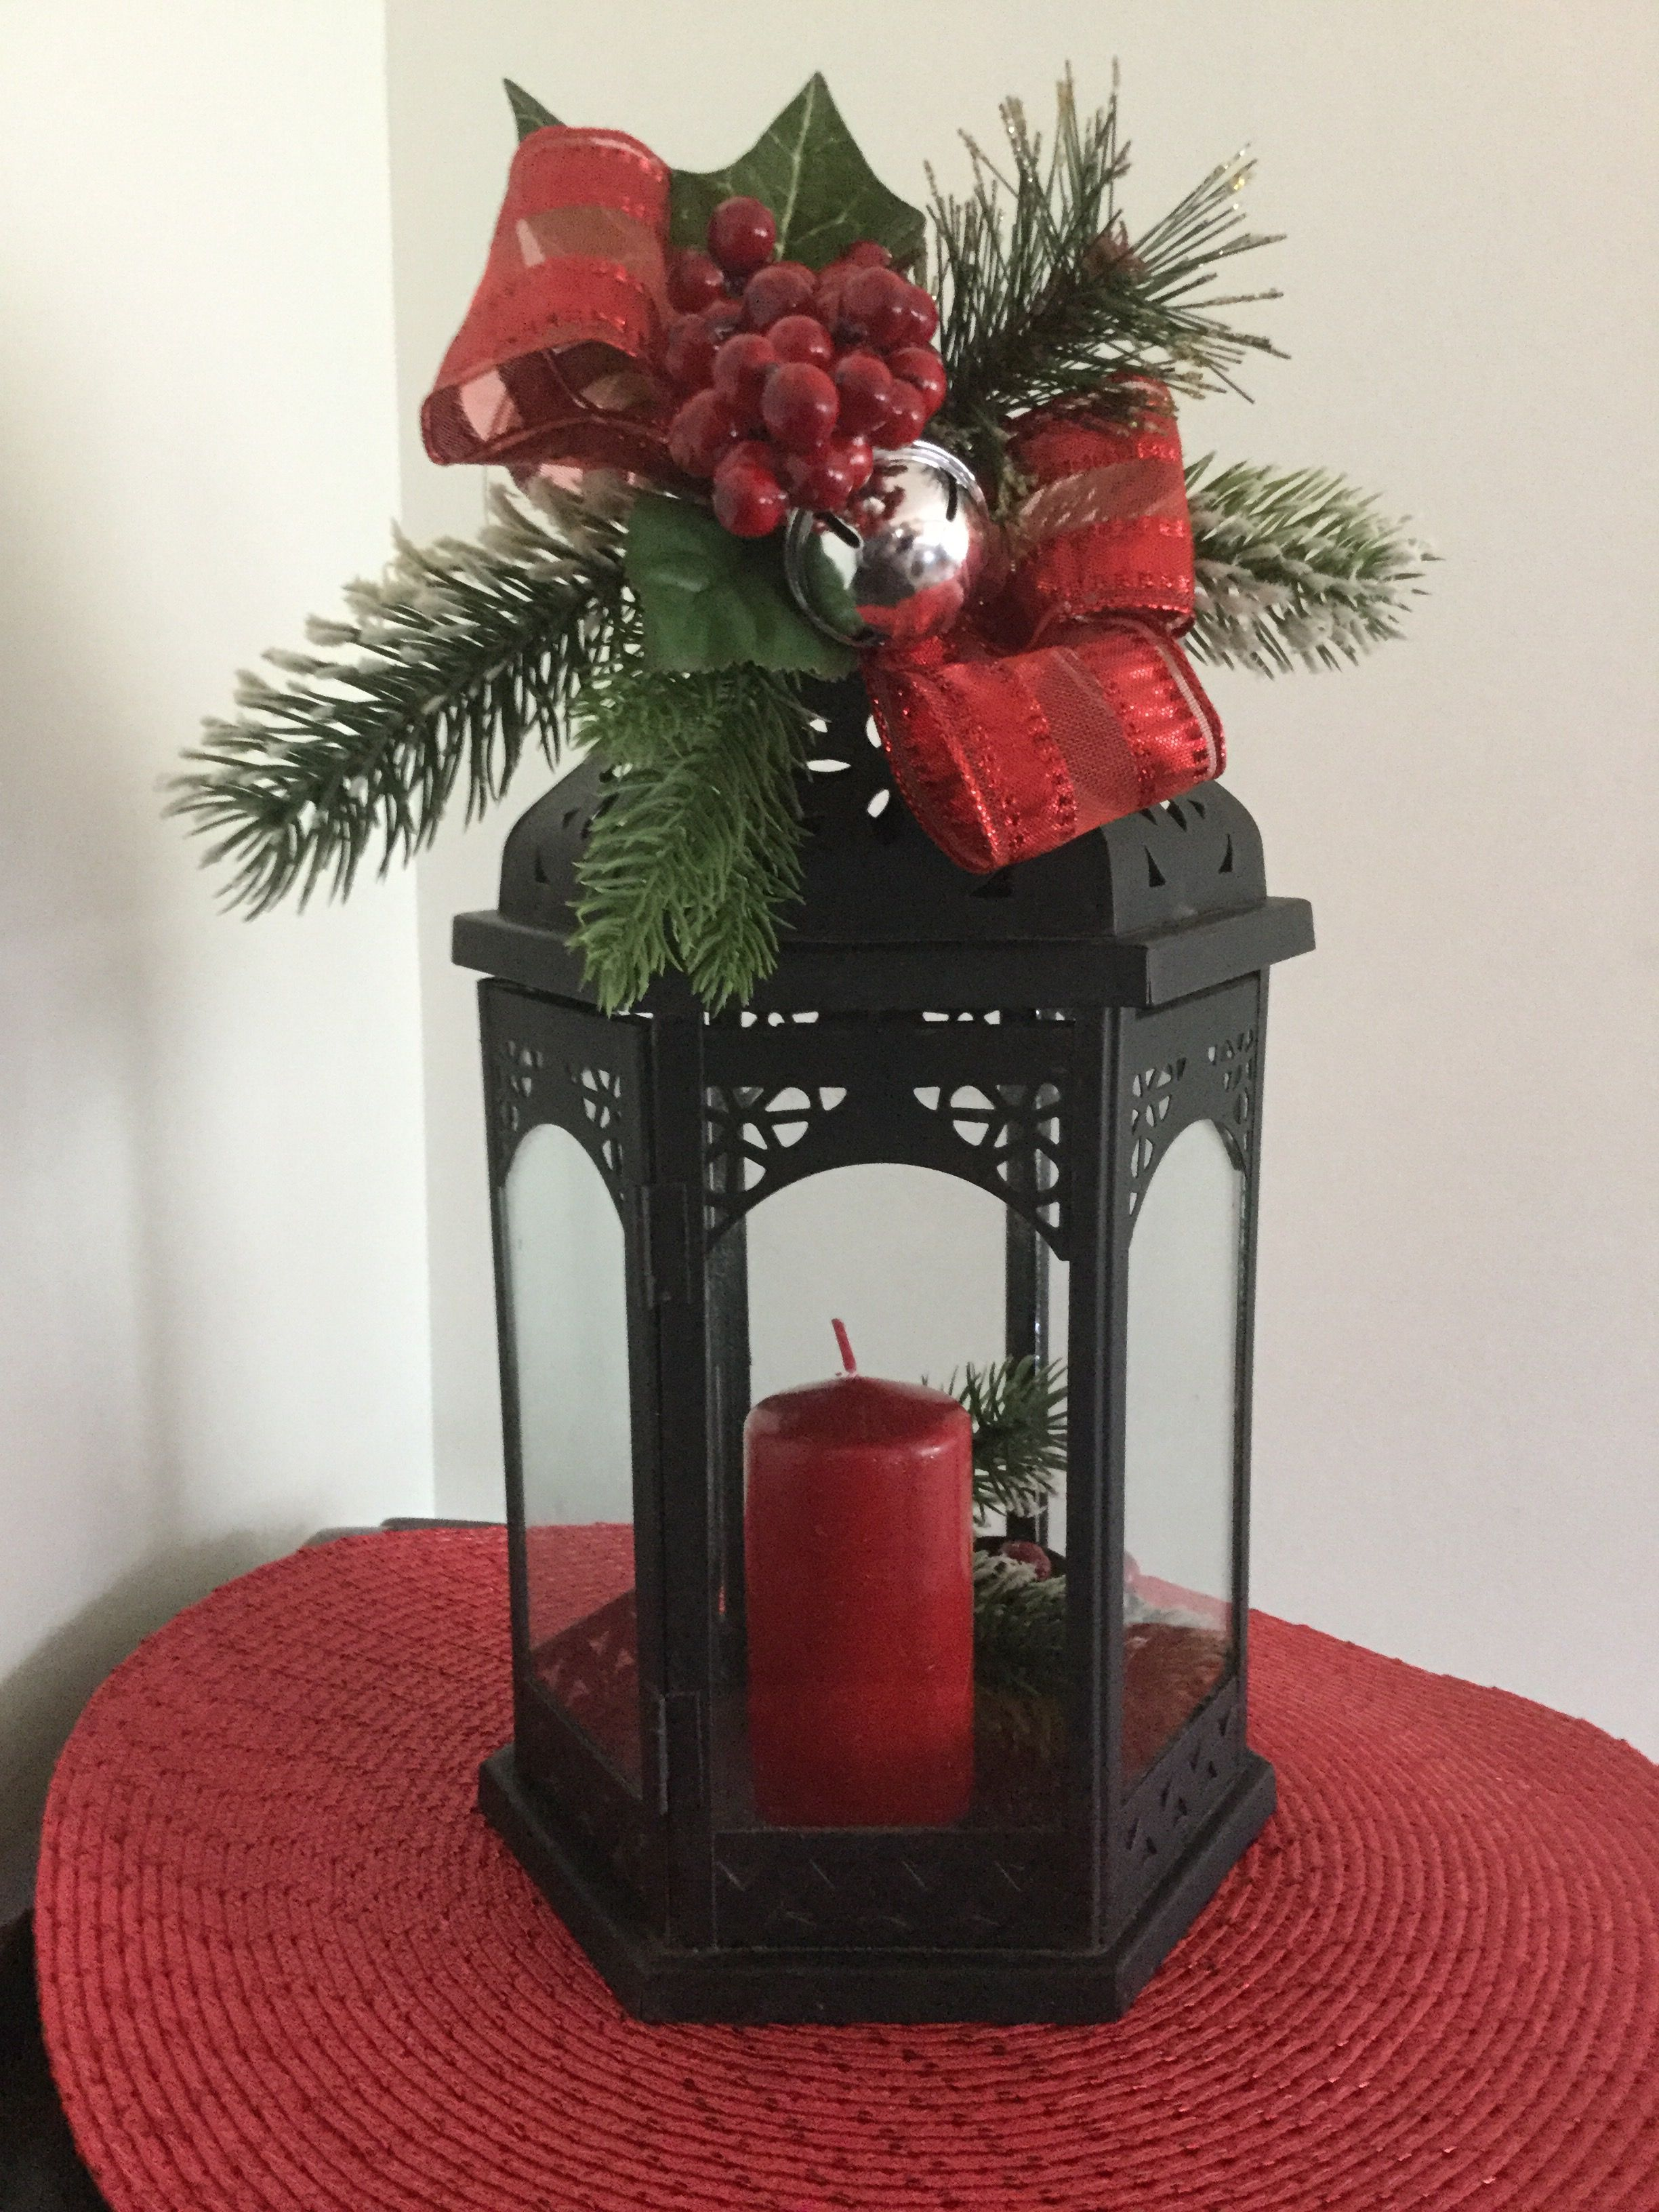 Christmas Lanterns, Christmas Centrepieces, Christmas Decorations, Christmas Trees, Holiday Time,